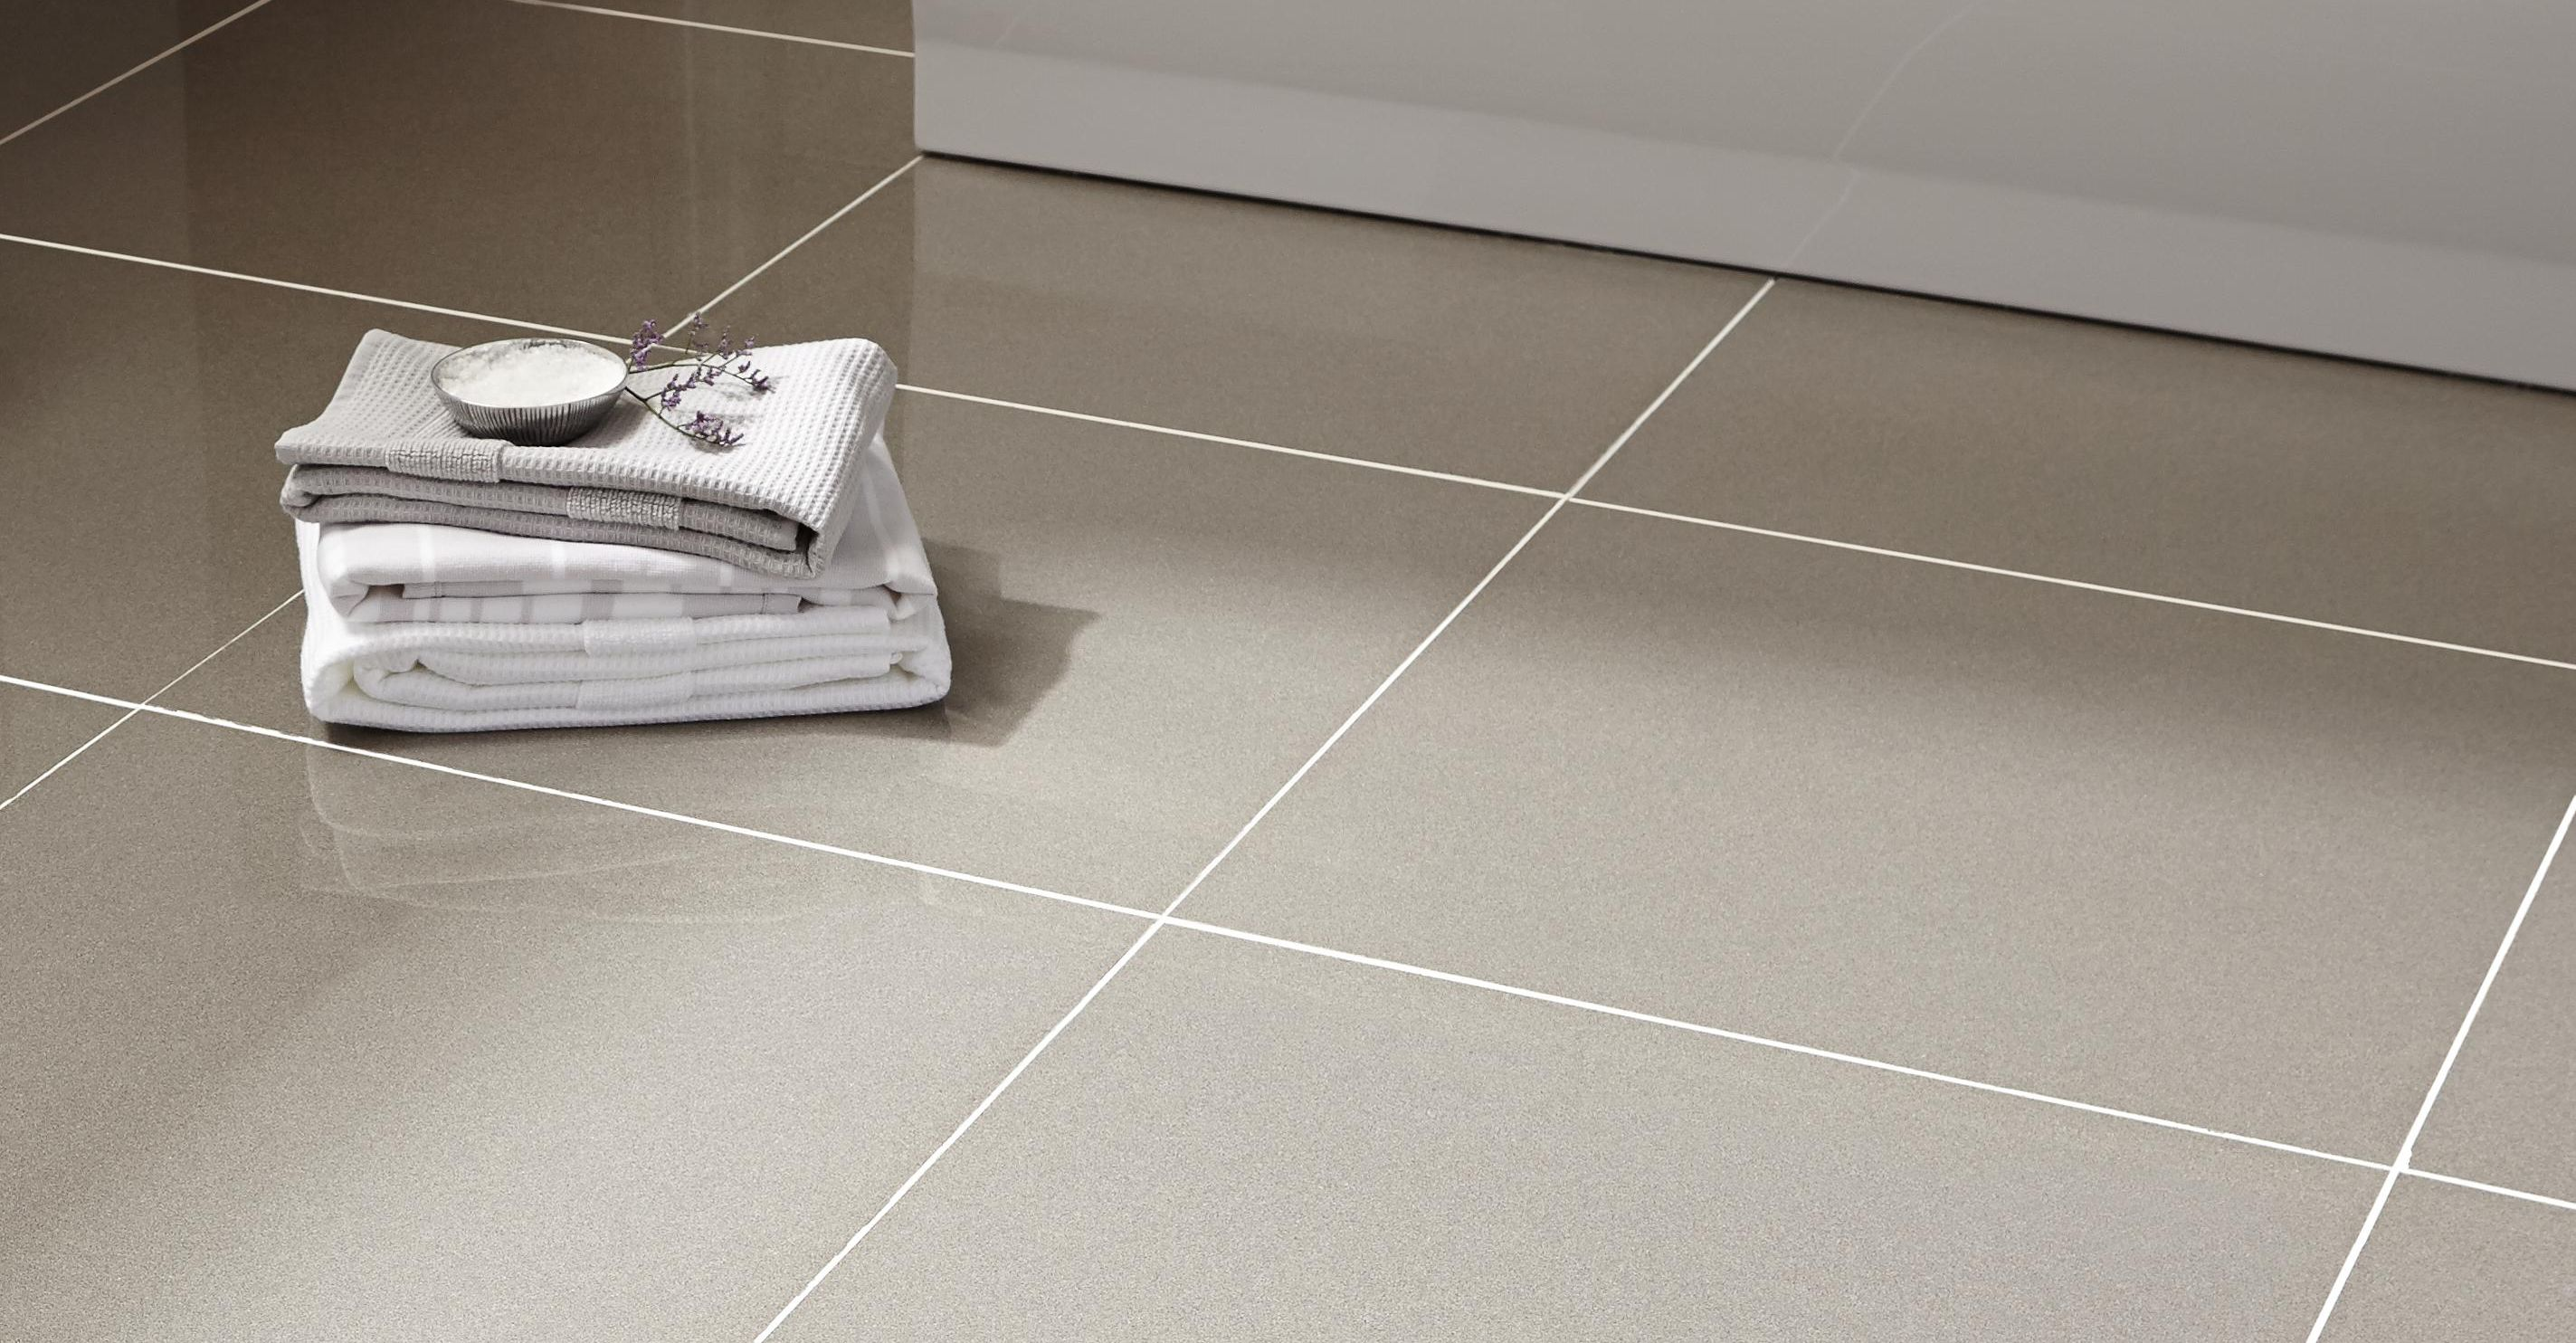 How to lay floor tiles help ideas diy at bq dailygadgetfo Image collections